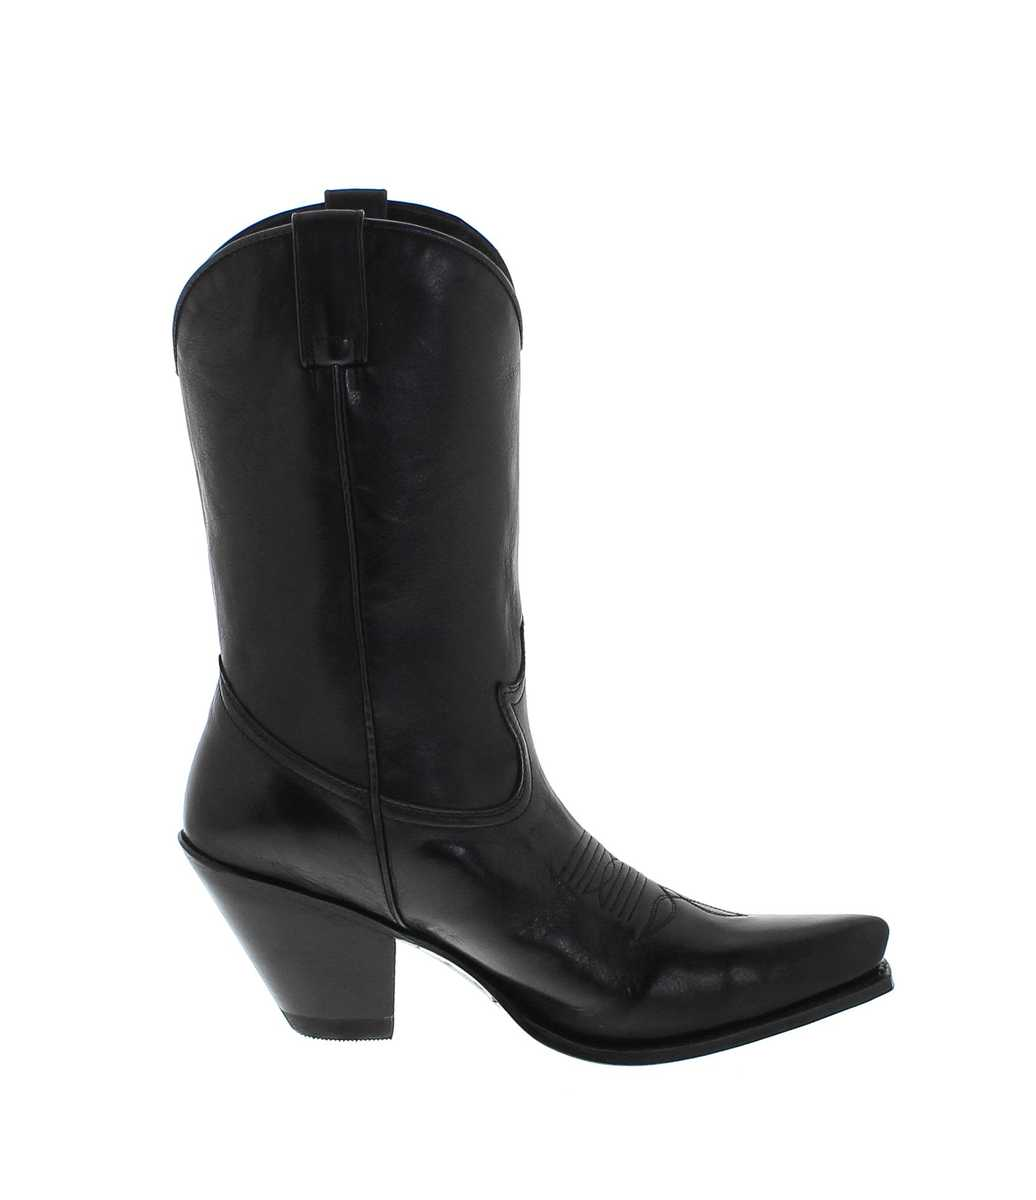 ad3ede12a95 Sendra Boots 15422 Negro Womens Western boot - black